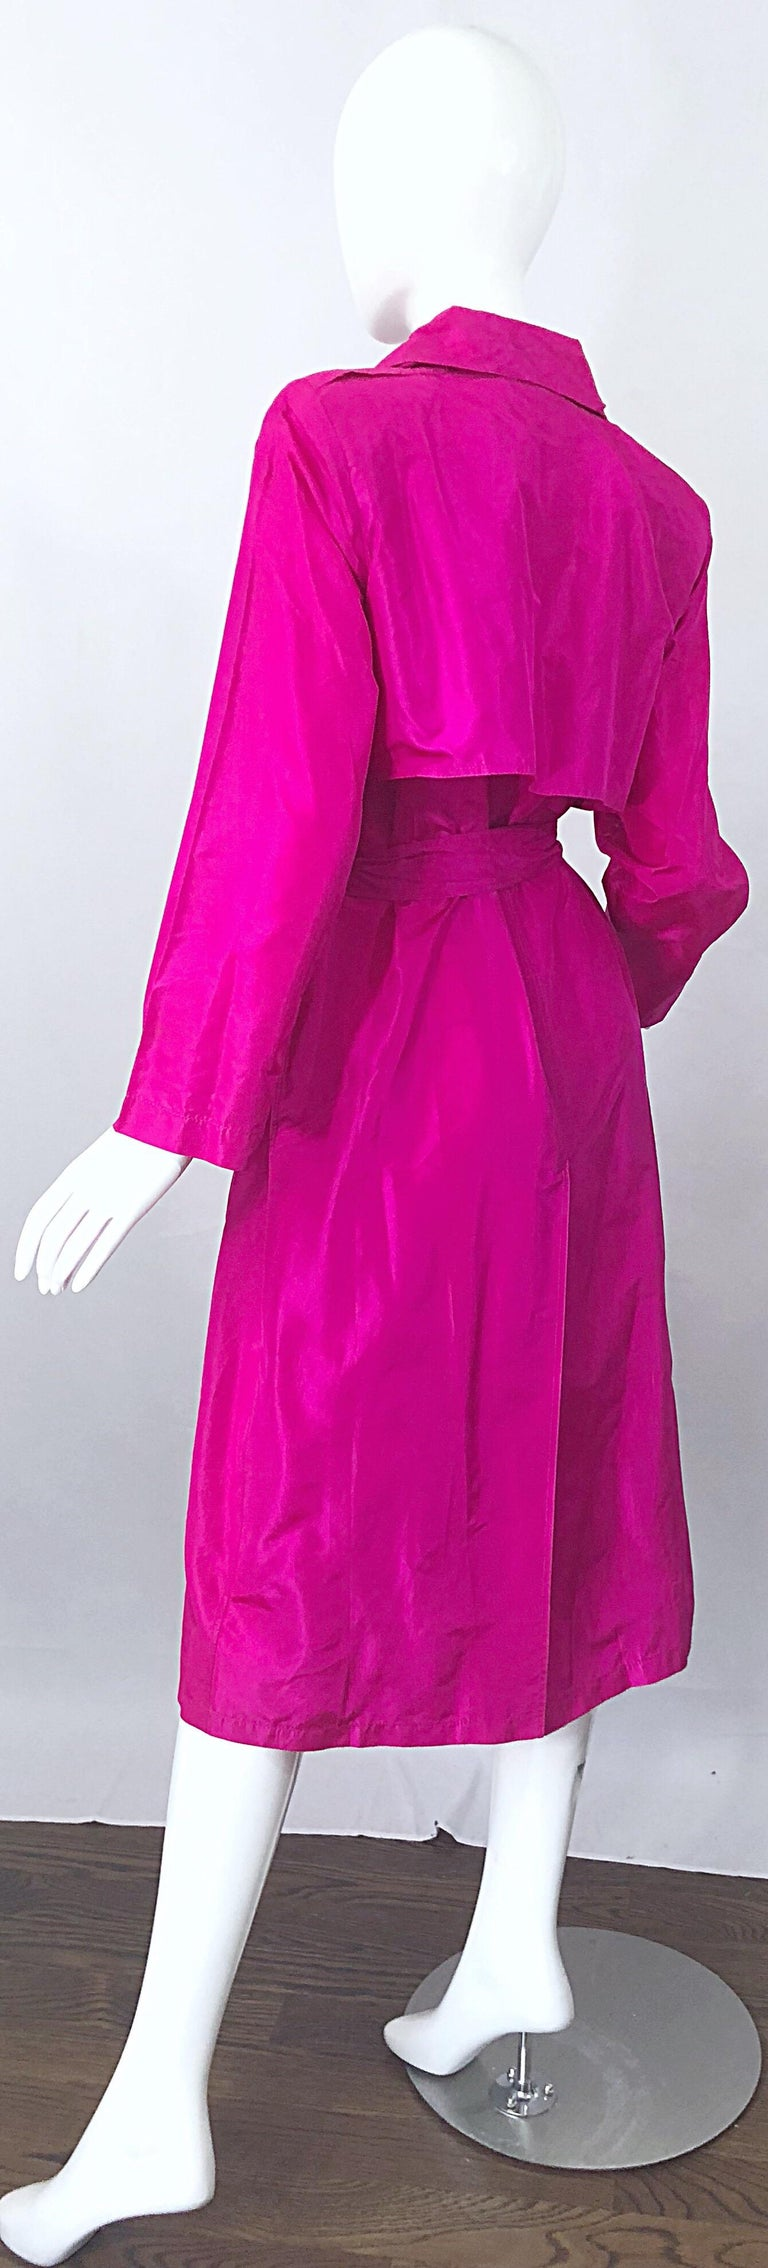 Vintage Vicky Tiel Couture 80s Hot Pink Fuchsia Silk 1980s Trecnch Jacket Dress For Sale 8